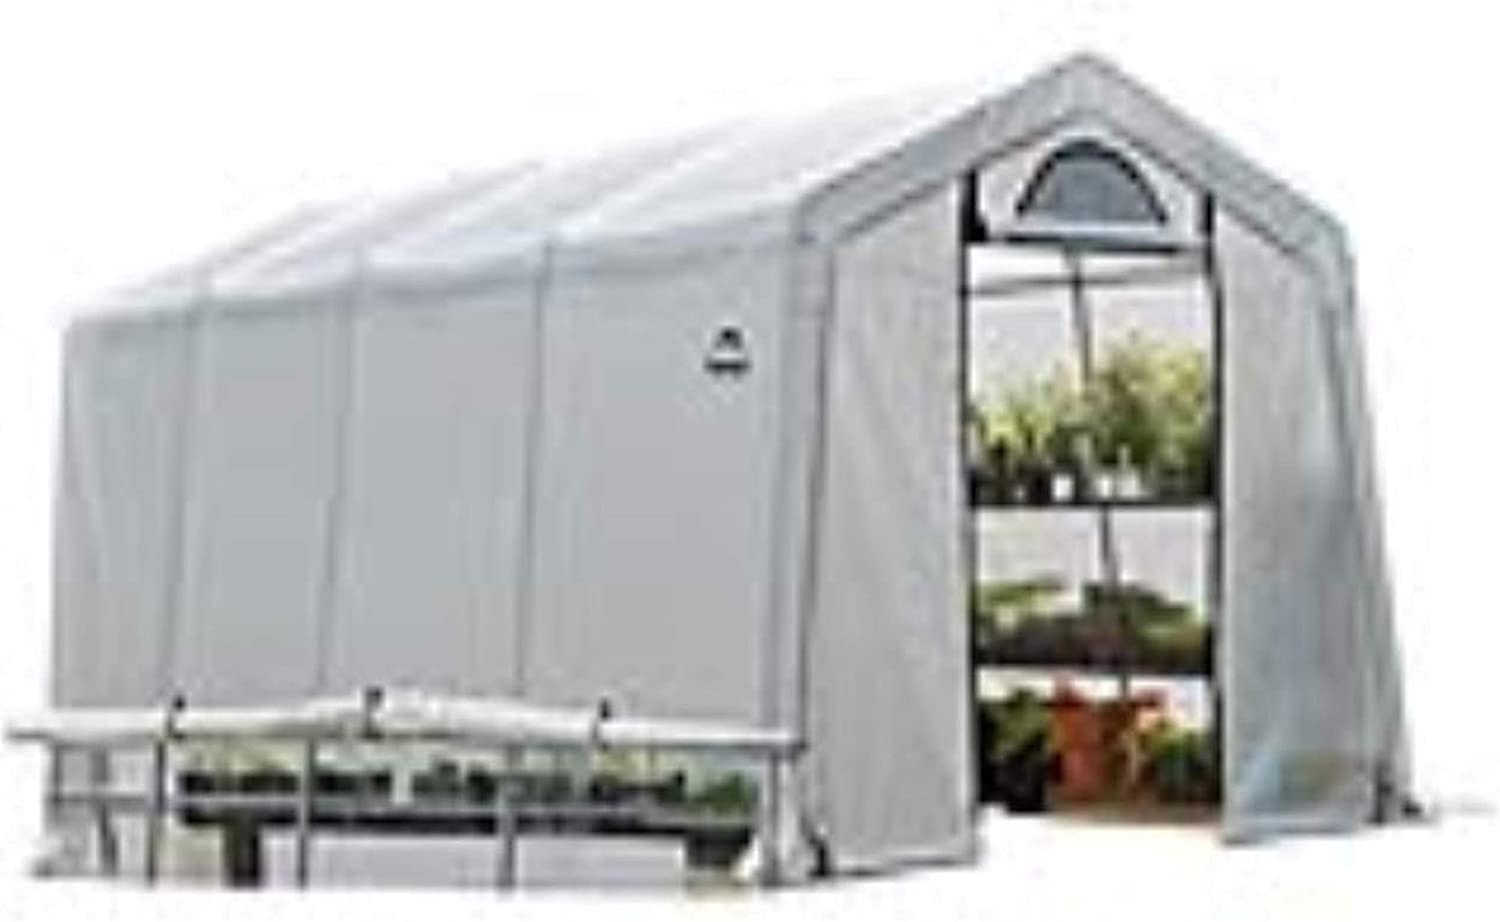 ShelterLogic 10' x 20' GrowIT Greenhouse-in-a-Box Flow Peak Roof Style Easy Access Outdoor Grow House with Translucent Waterproof Cover